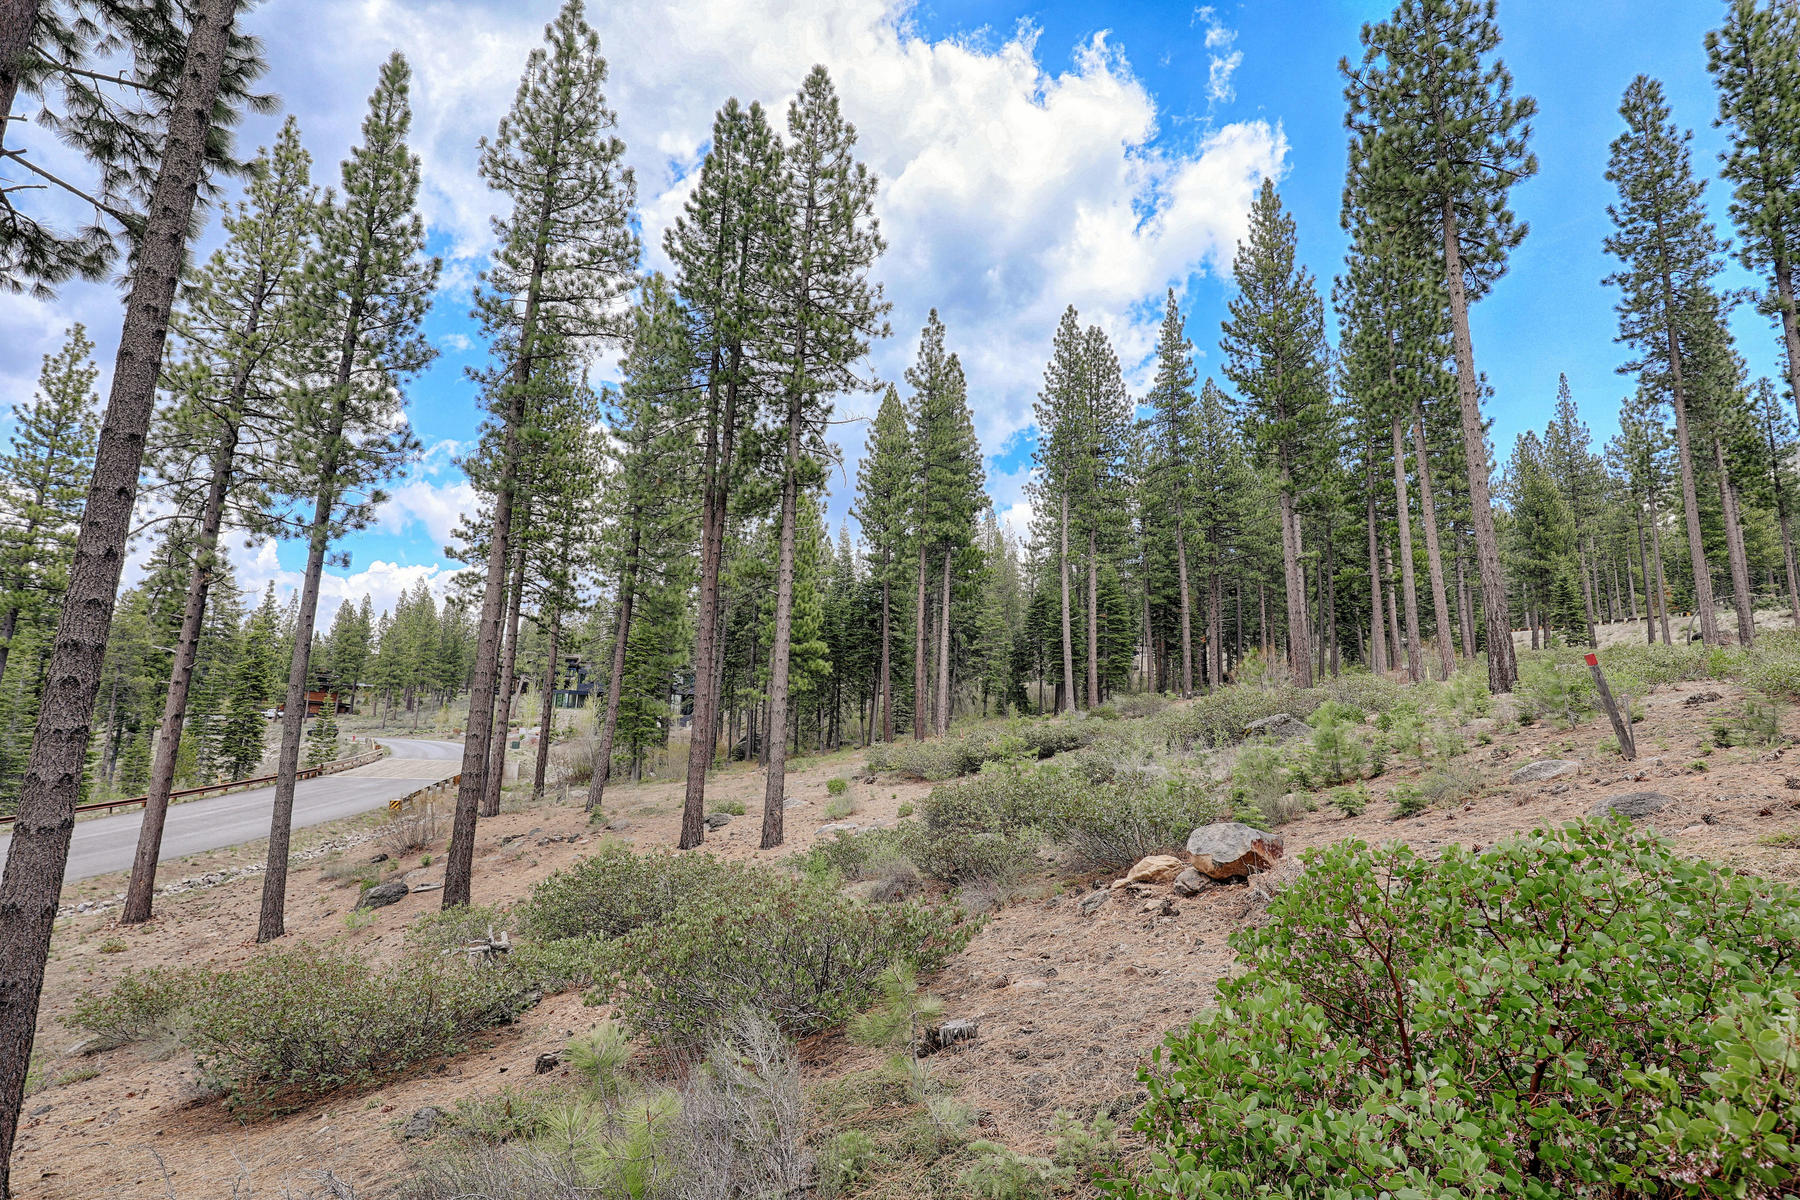 Additional photo for property listing at 8154 Villandry Drive, Truckee, CA 8154 Villandry Drive Truckee, California 96161 United States